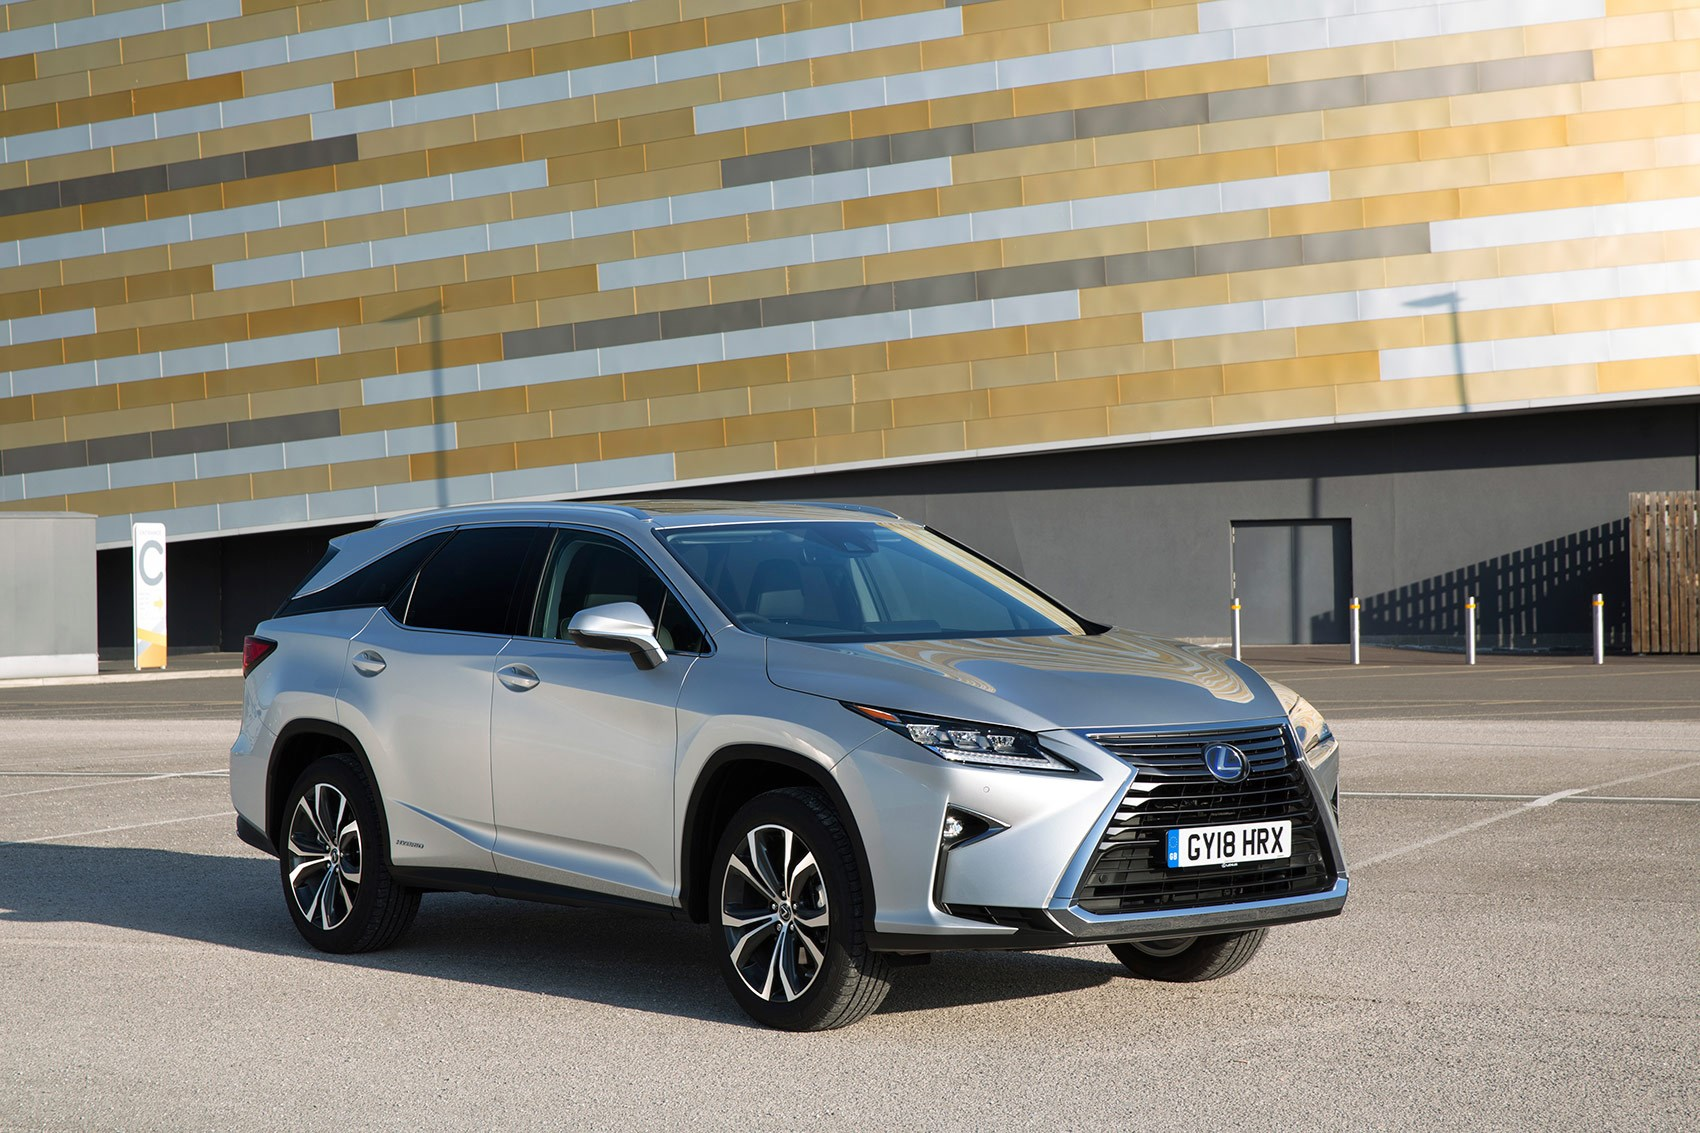 Lexus RX 450hL UK prices and specs: costs from £50,095 for the SE trim, £54,095 for Luxury and £61,995 for the Premier spec